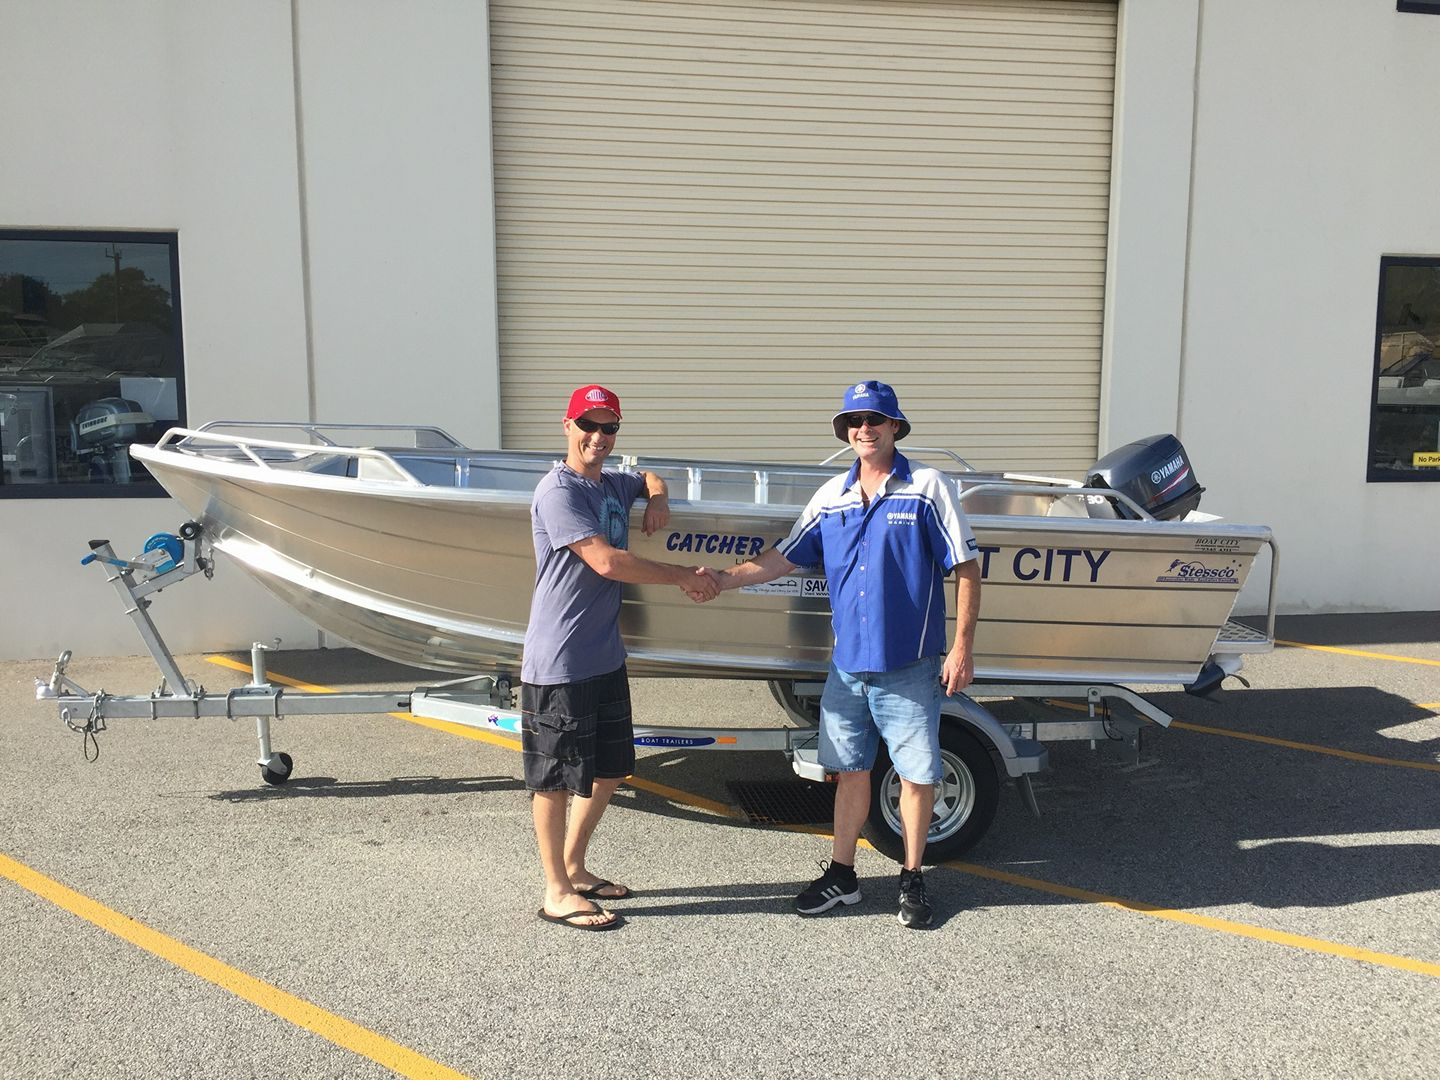 Boat raffle winner Scott Cox picking up his prize boat from Boat City